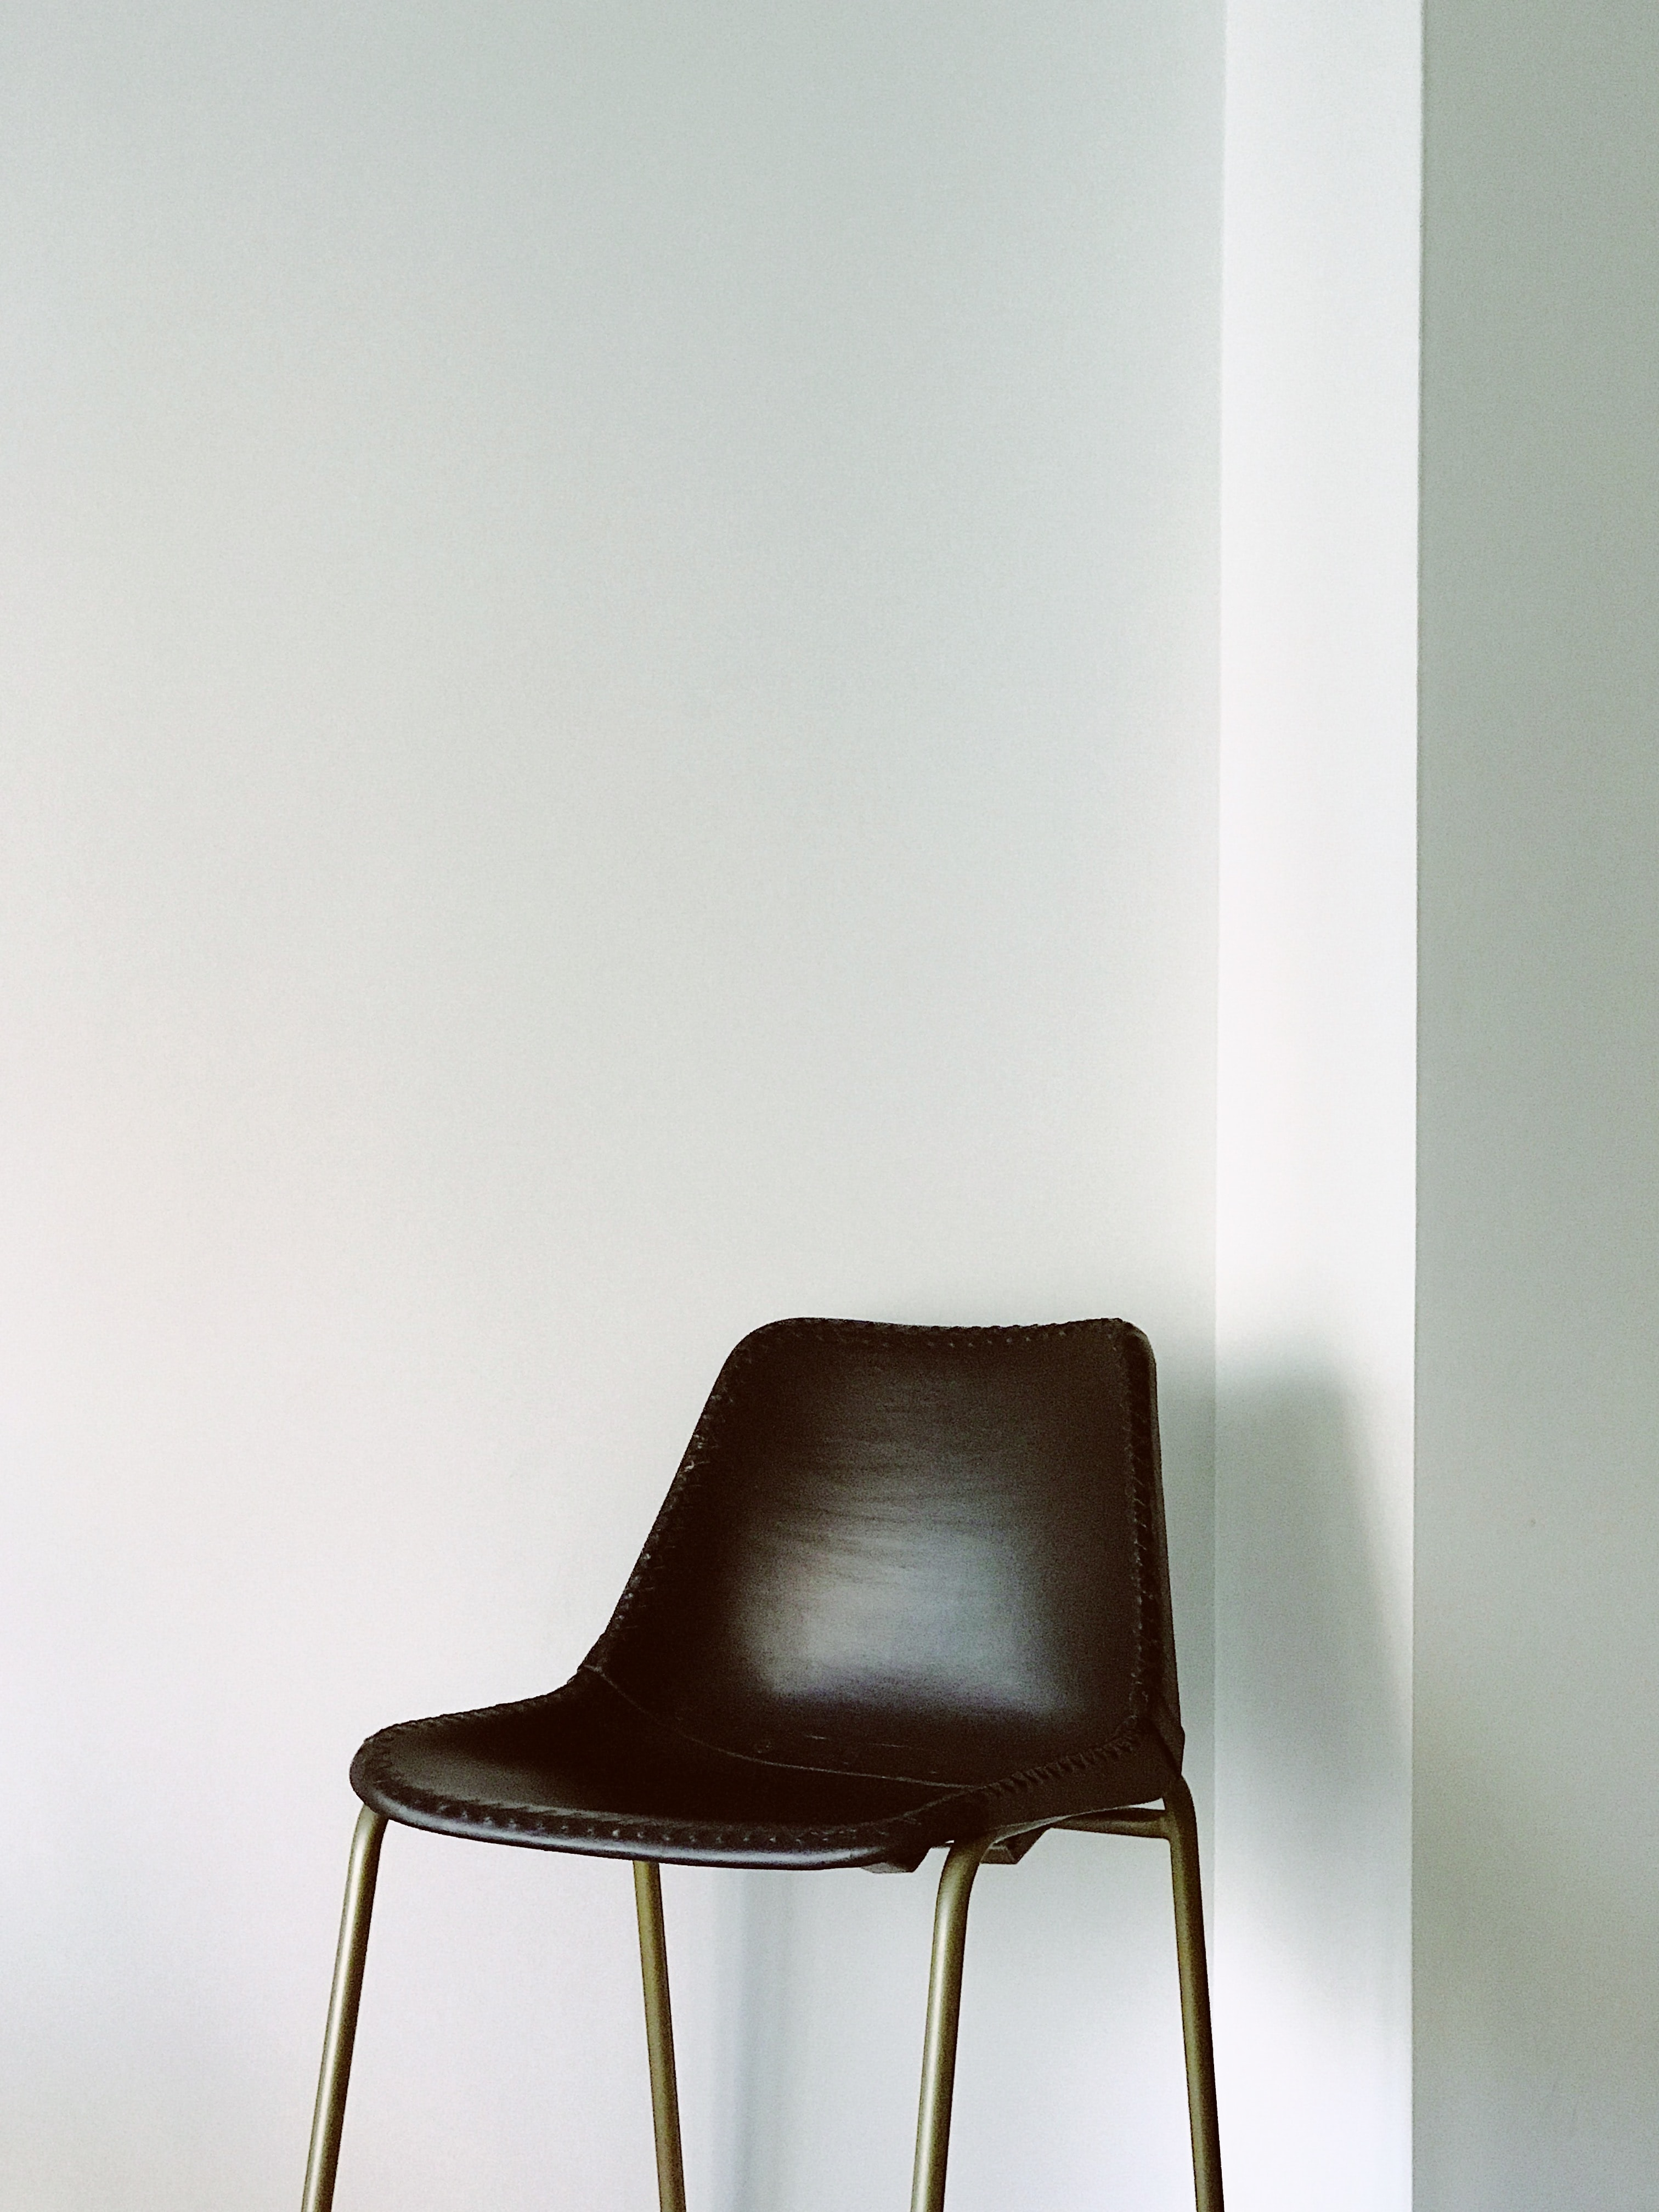 brown chair near white painted wall